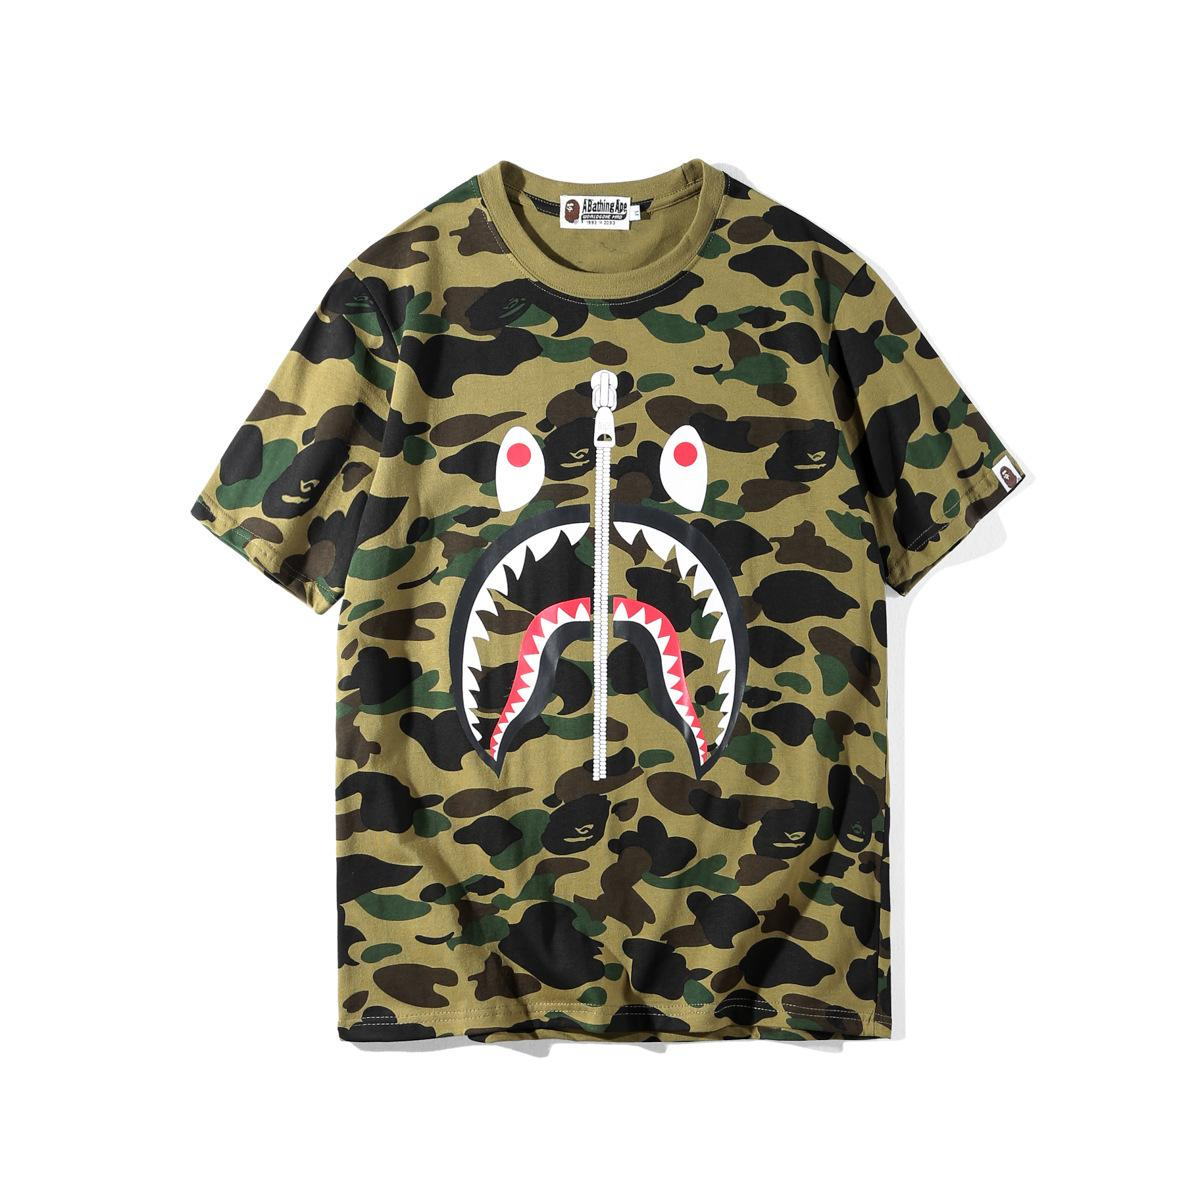 mens T-Shirt Camouflage Cartoon Leisure Time T-shirts Easy Short Sleeve T shirts for men T-Shirt